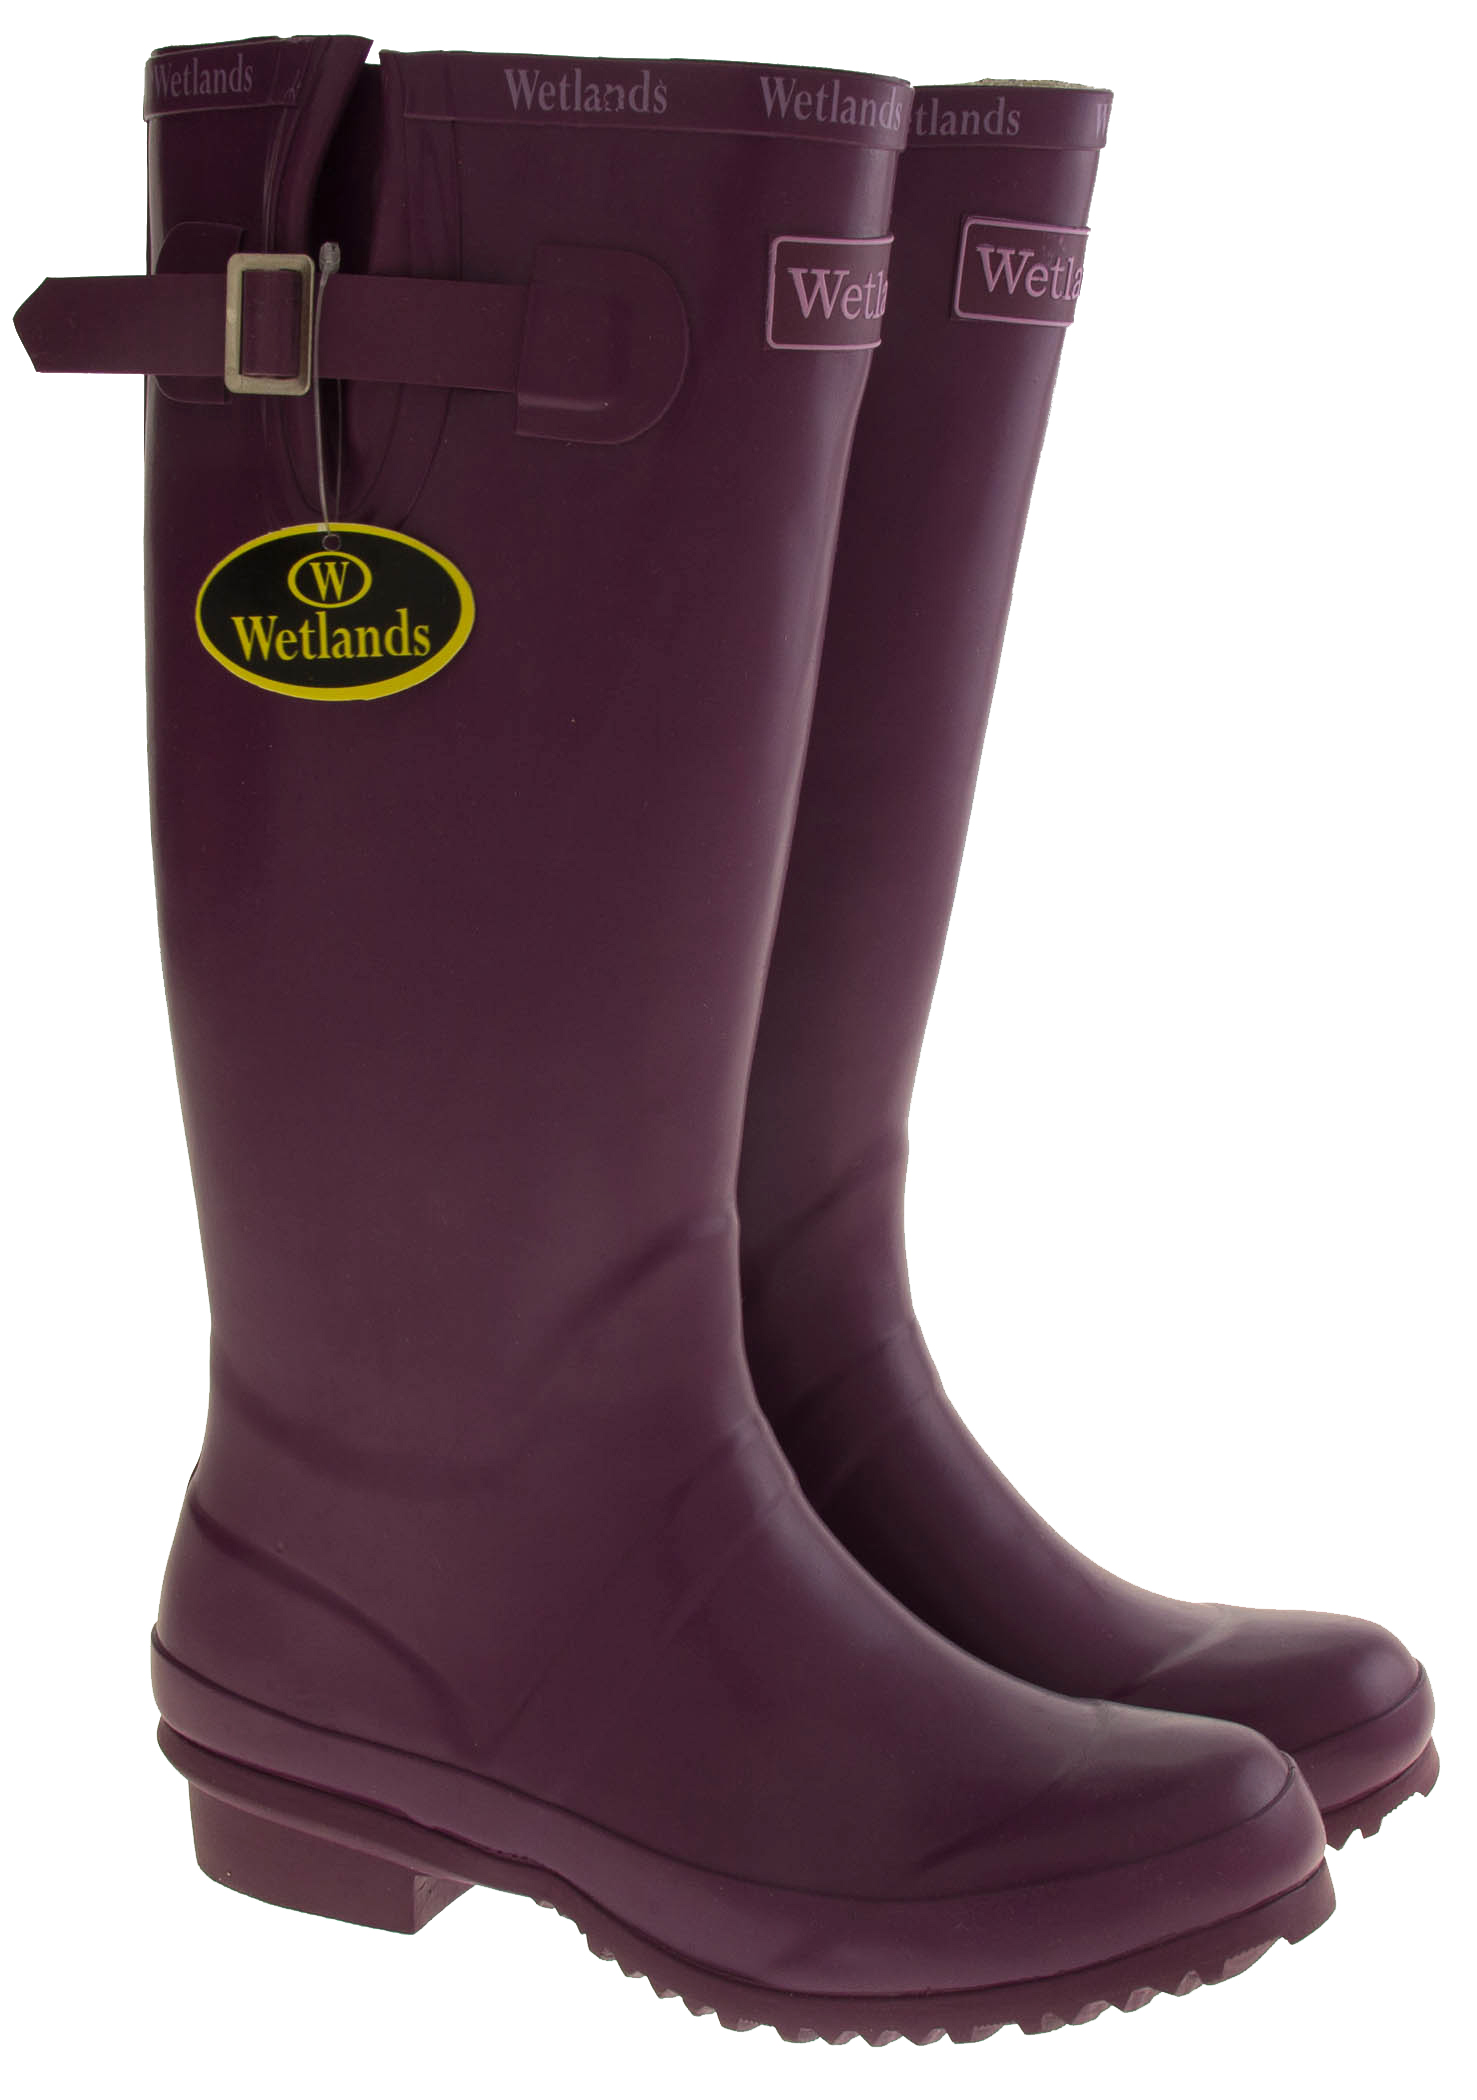 Simple New Womens Green WETLANDS Knee High Festival Garden Wellies Wellington